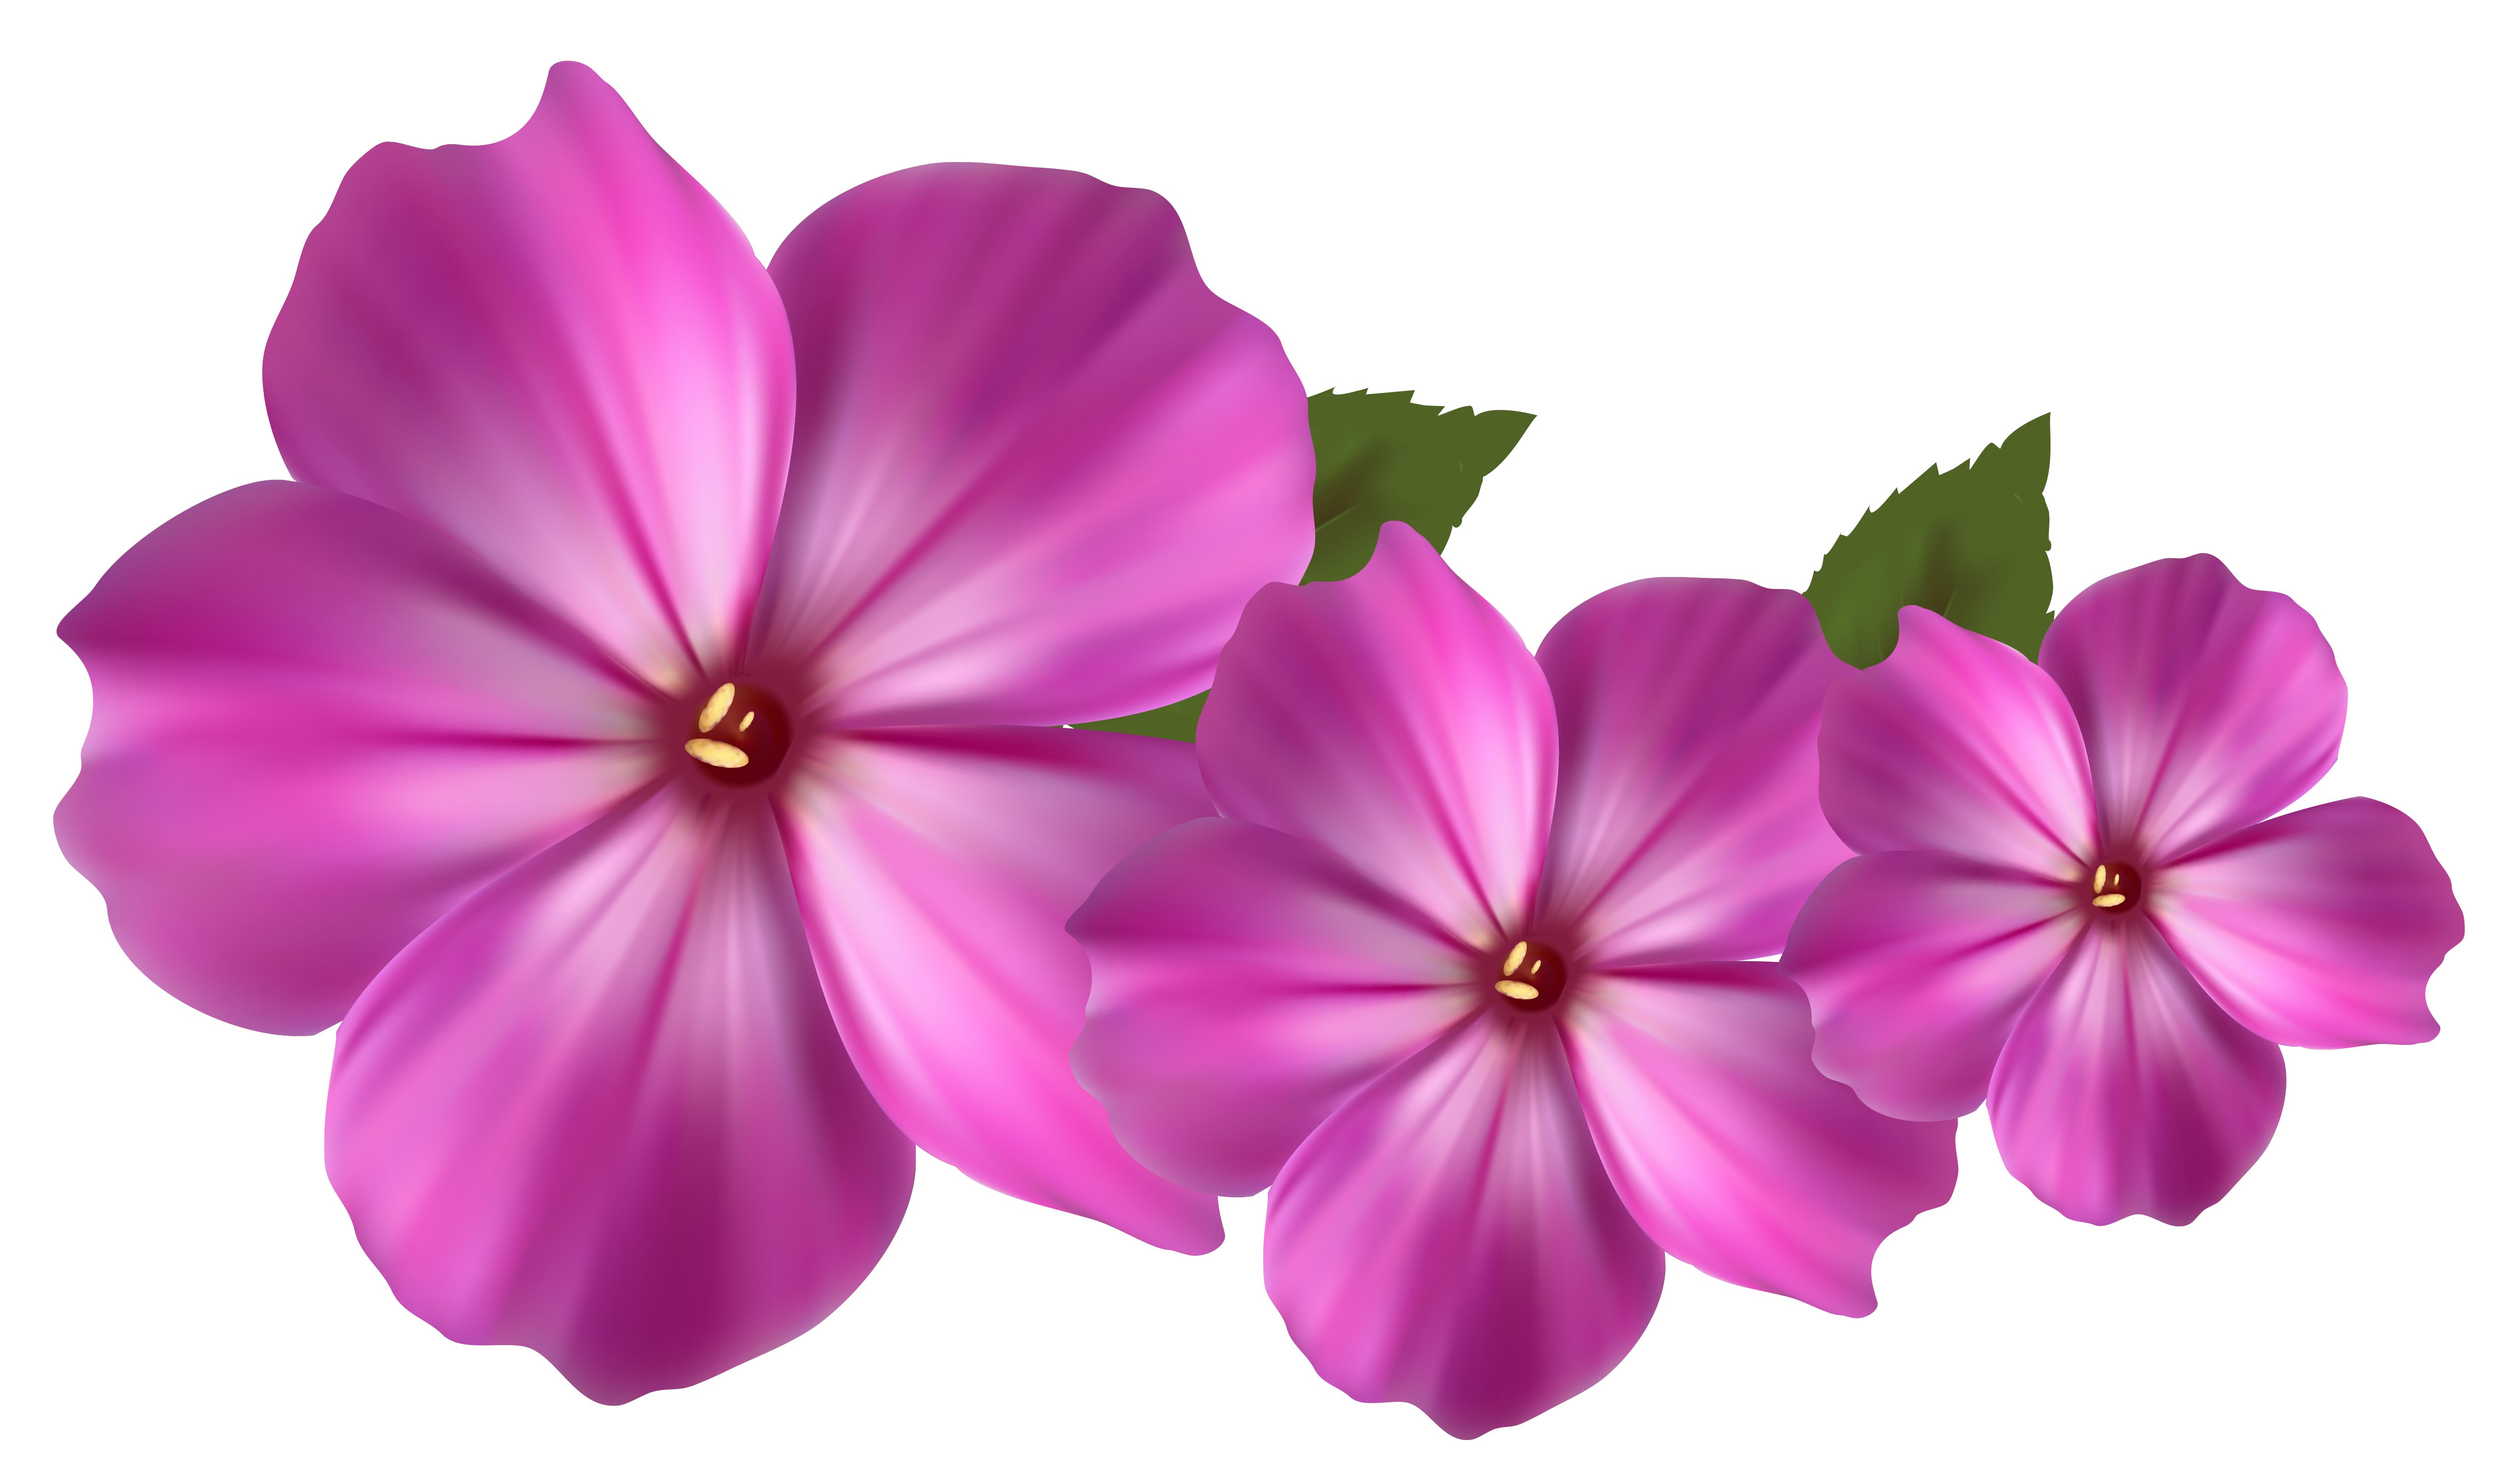 Pink Flower Decor PNG image #17941 - Flower PNG